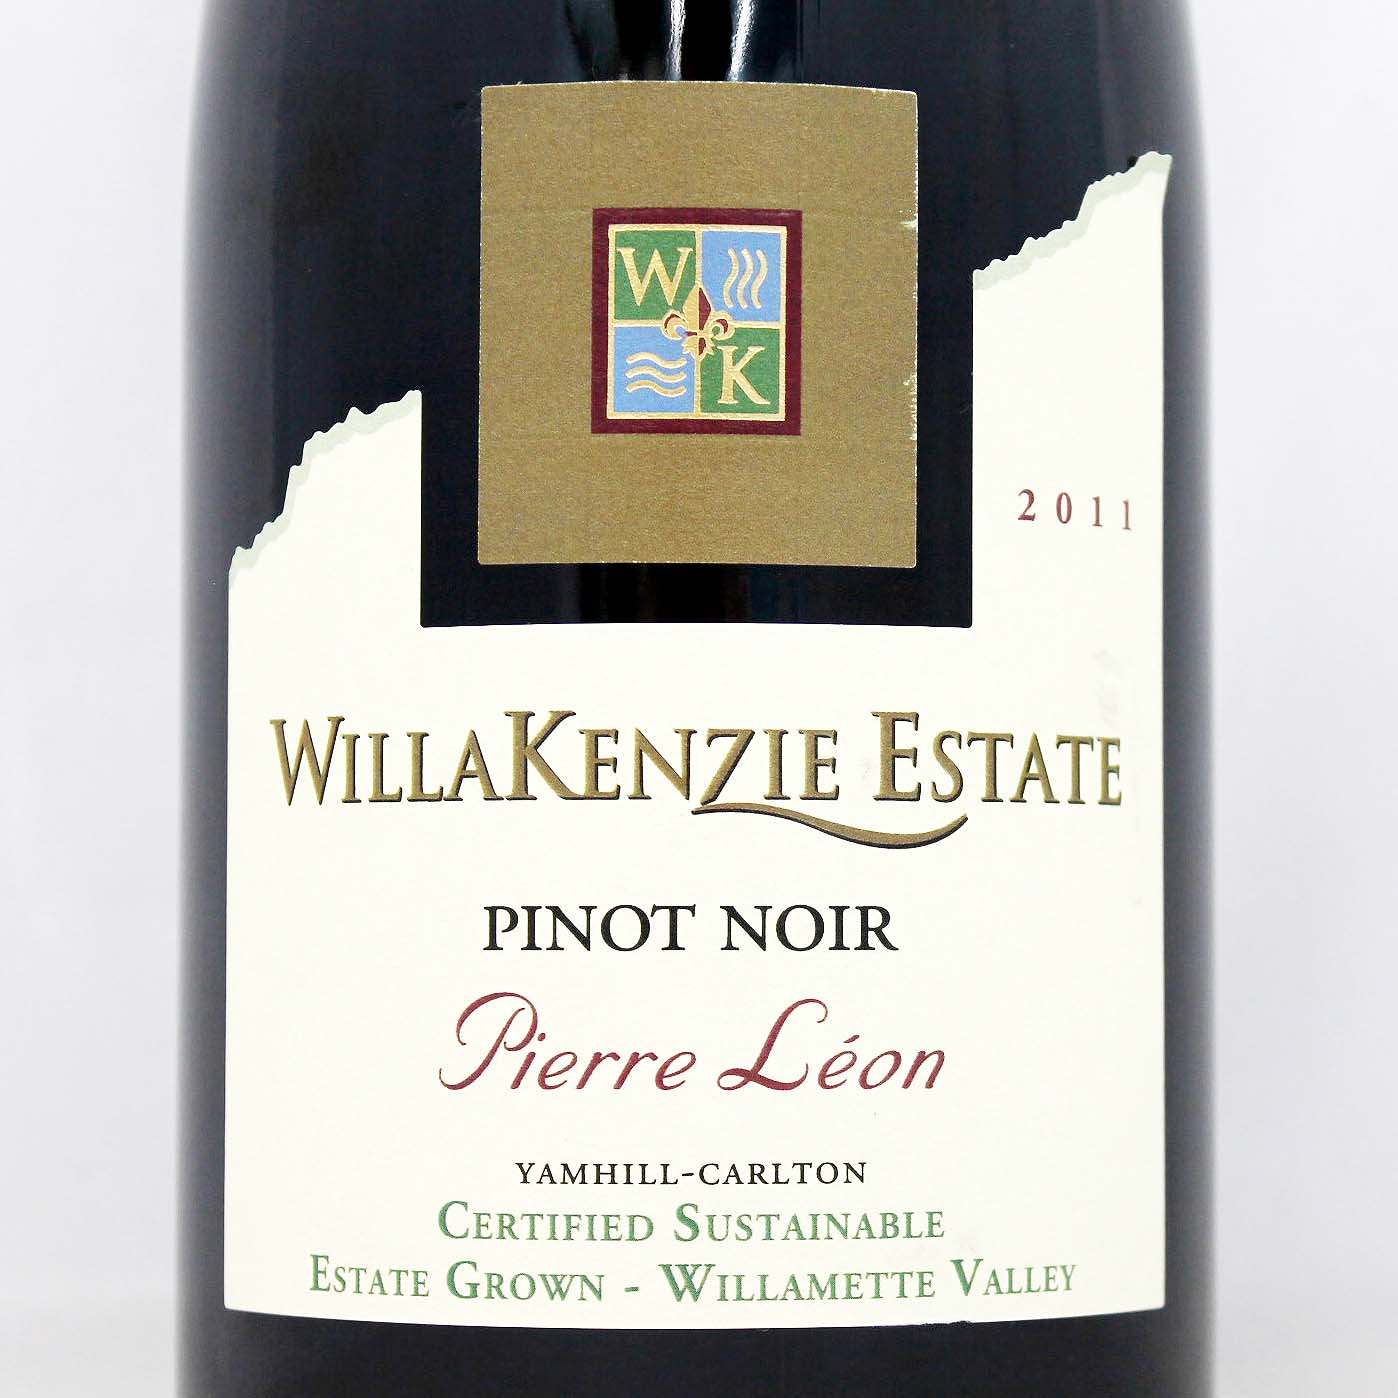 2011 Willakenzie Estate Pinot Noir